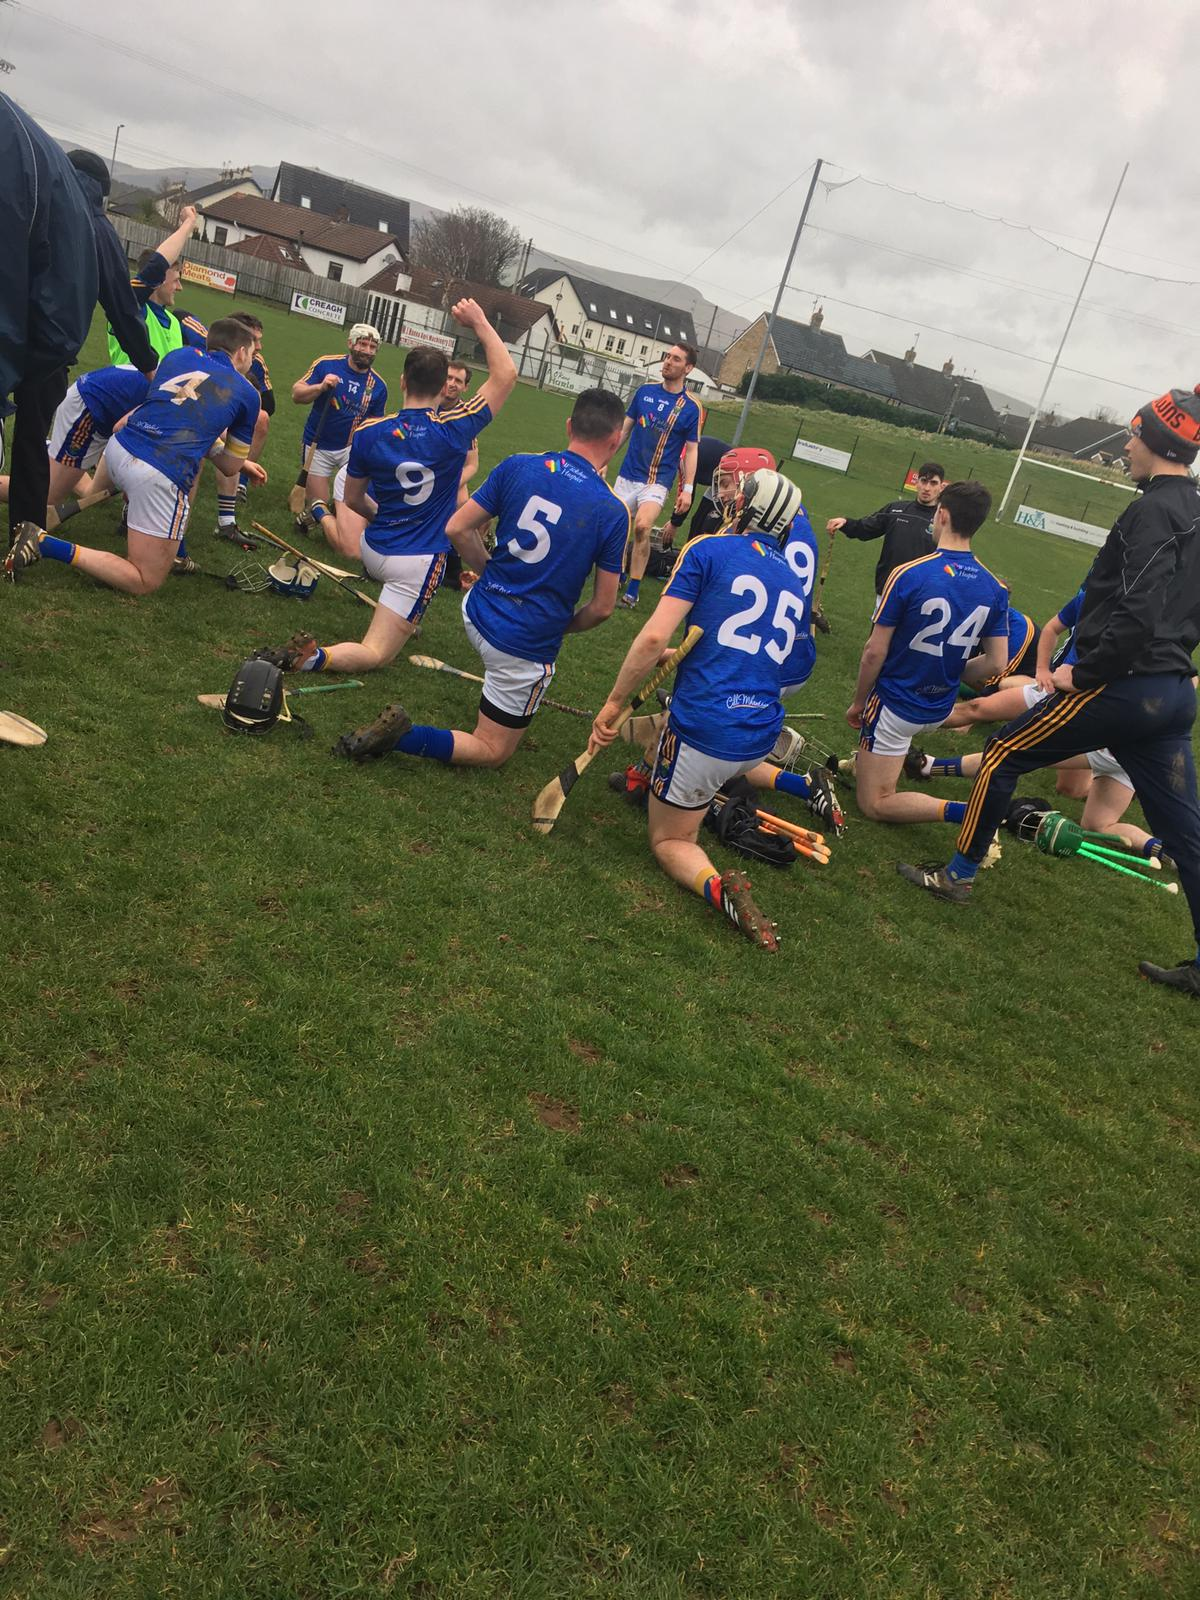 Wicklow book their place in the League Final